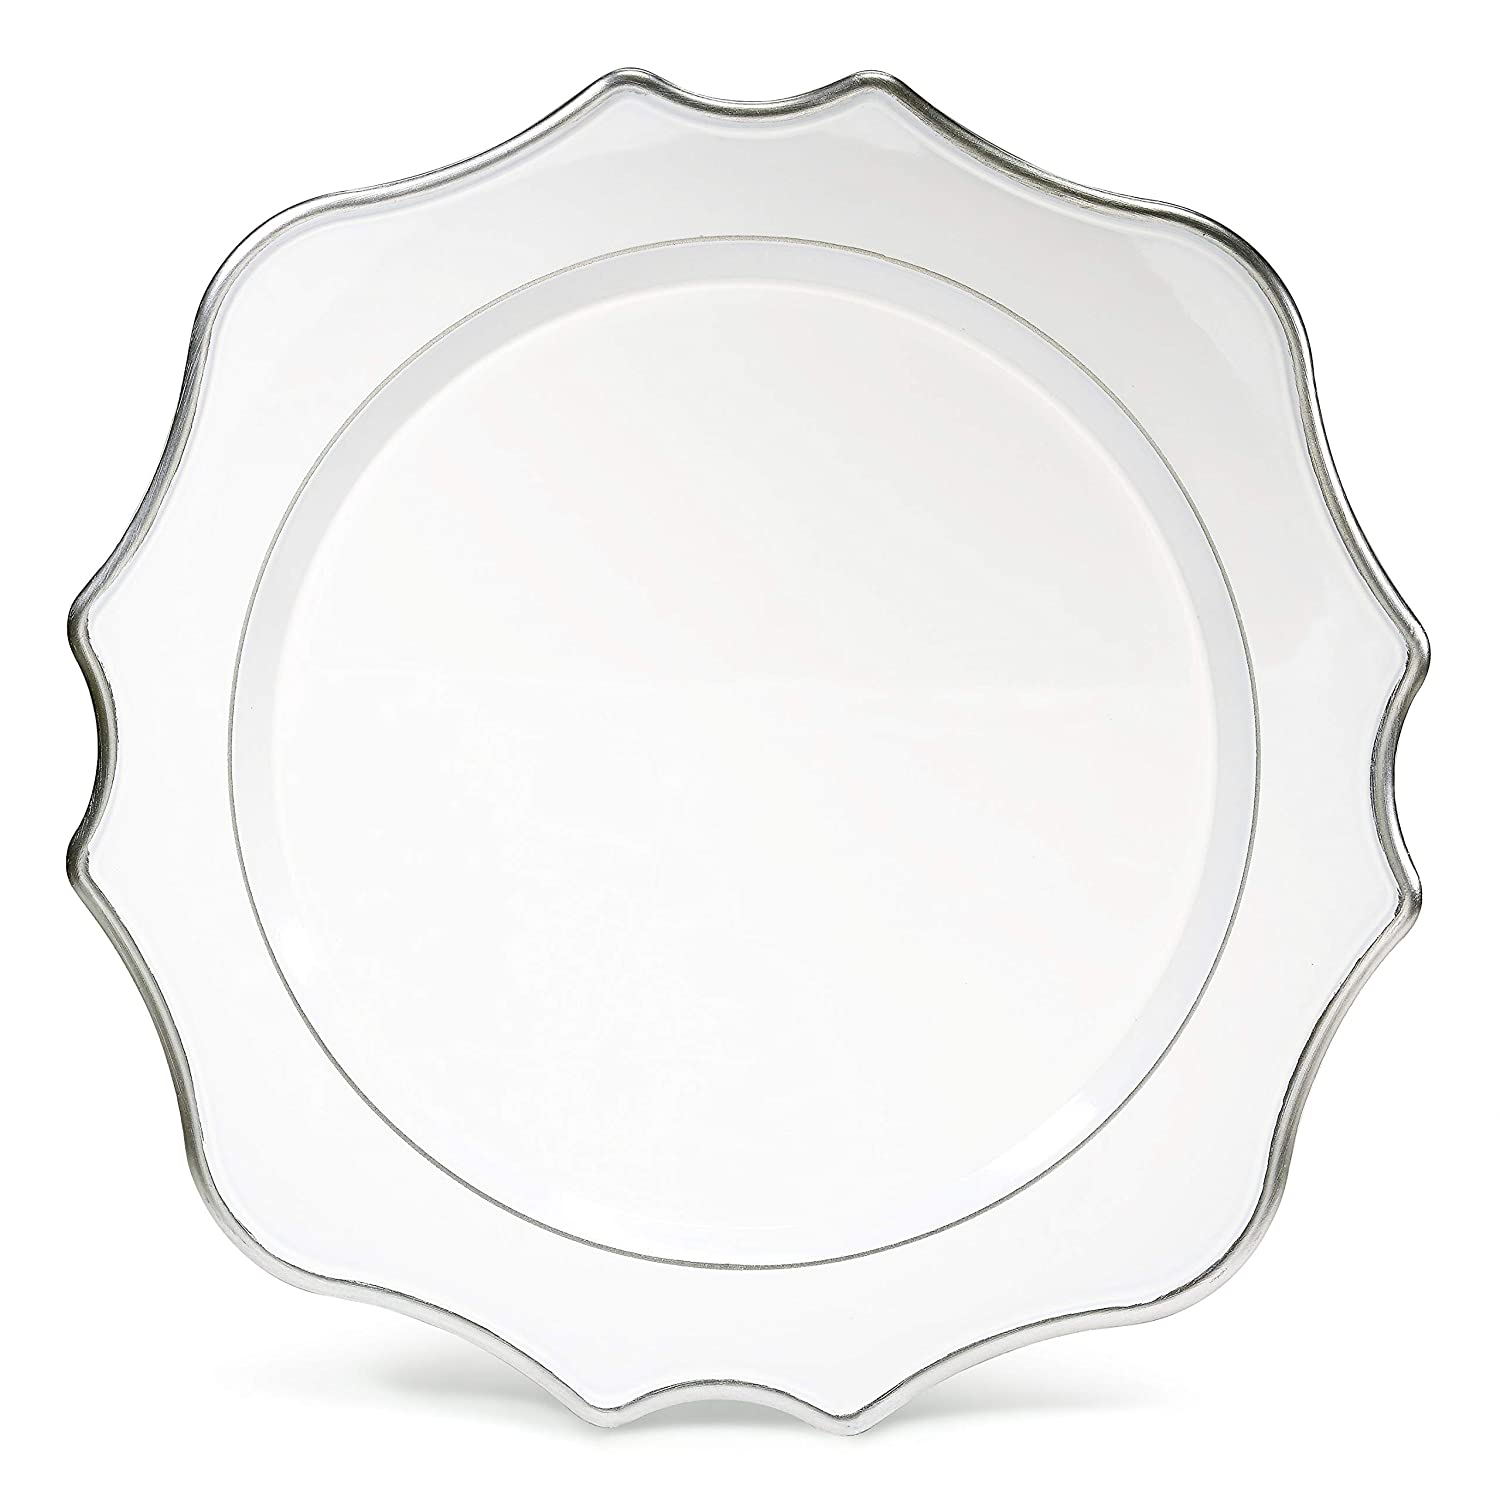 OCCASIONS 10 pcs Round 13'' Round Acrylic Plastic Wedding Chargers, Dinner Party Decoration Charger Plates (Scalloped White and silver) 71tdlcZBrnL